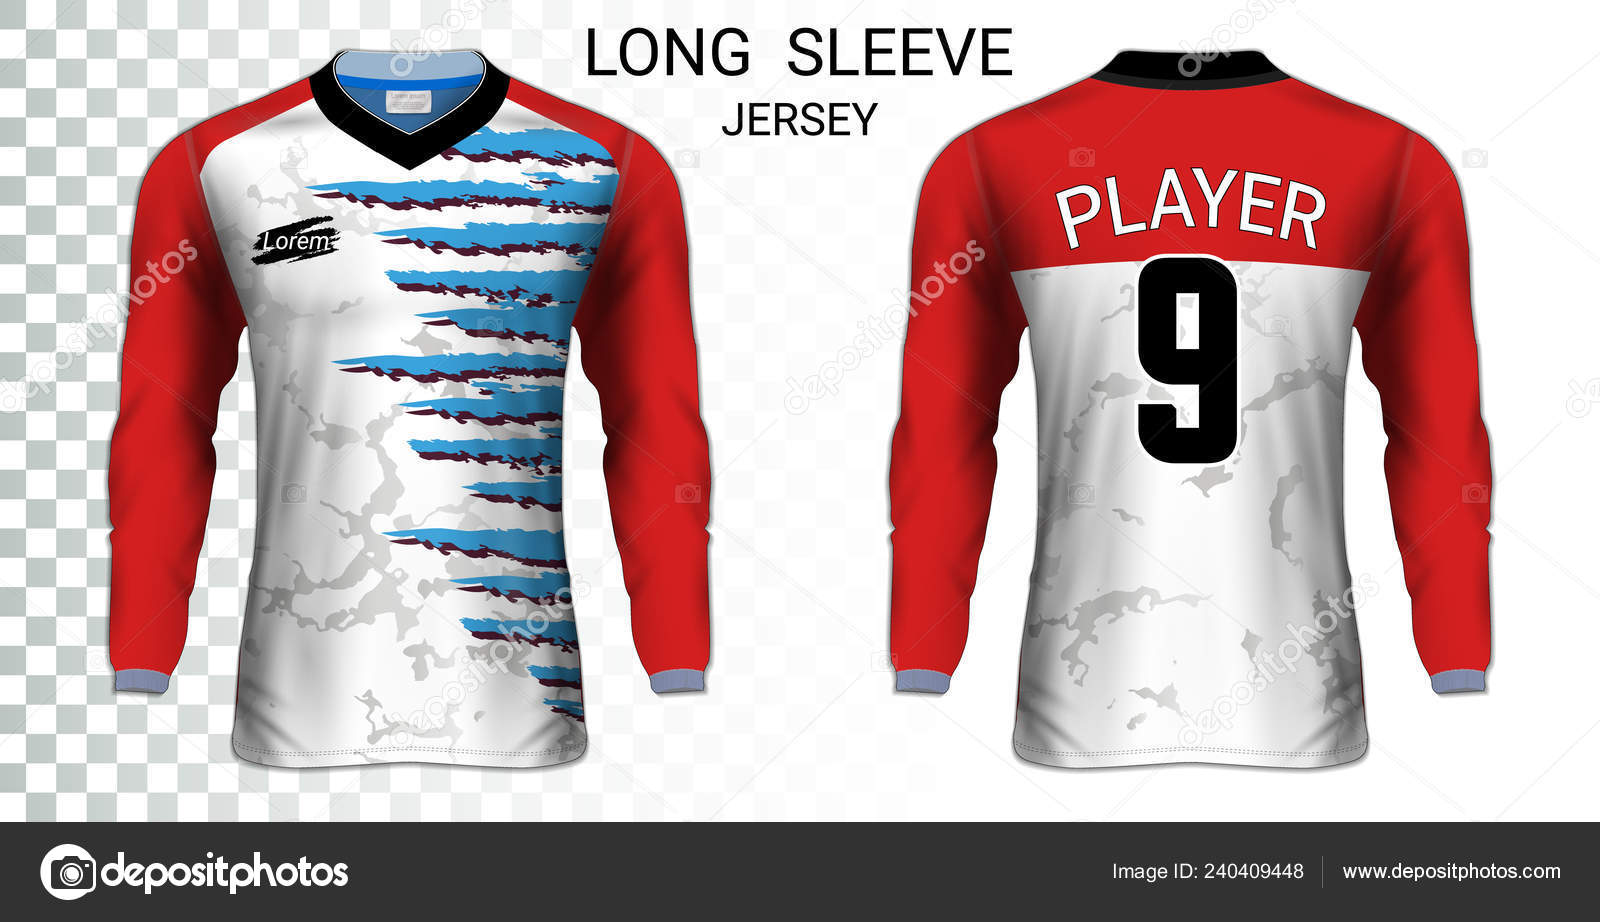 Long Sleeve Soccer Jerseys Shirt Sport Mockup Template Realistic Graphic Vector Image By C Aioonrak Gmail Com Vector Stock 240409448